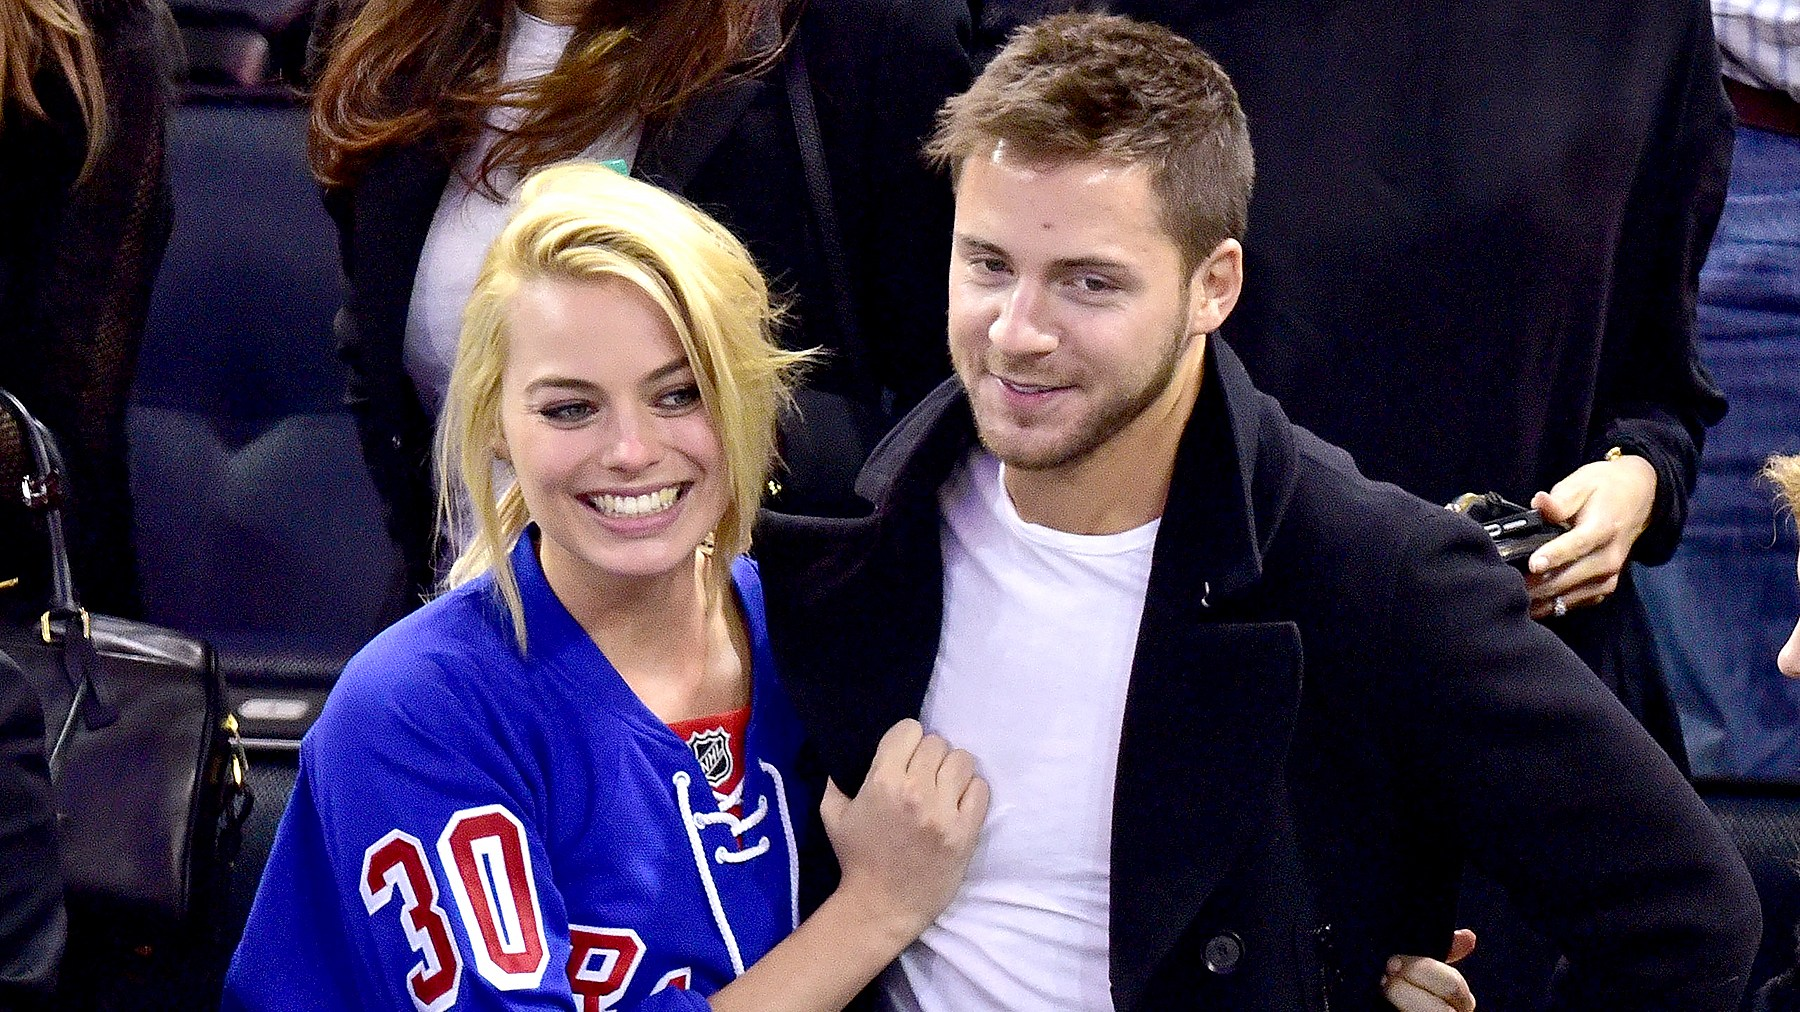 Margot Robbie and Tom Ackerley attend the Arizona Coyotes vs New York Rangers game at Madison Square Garden in New York City on February 26, 2015.